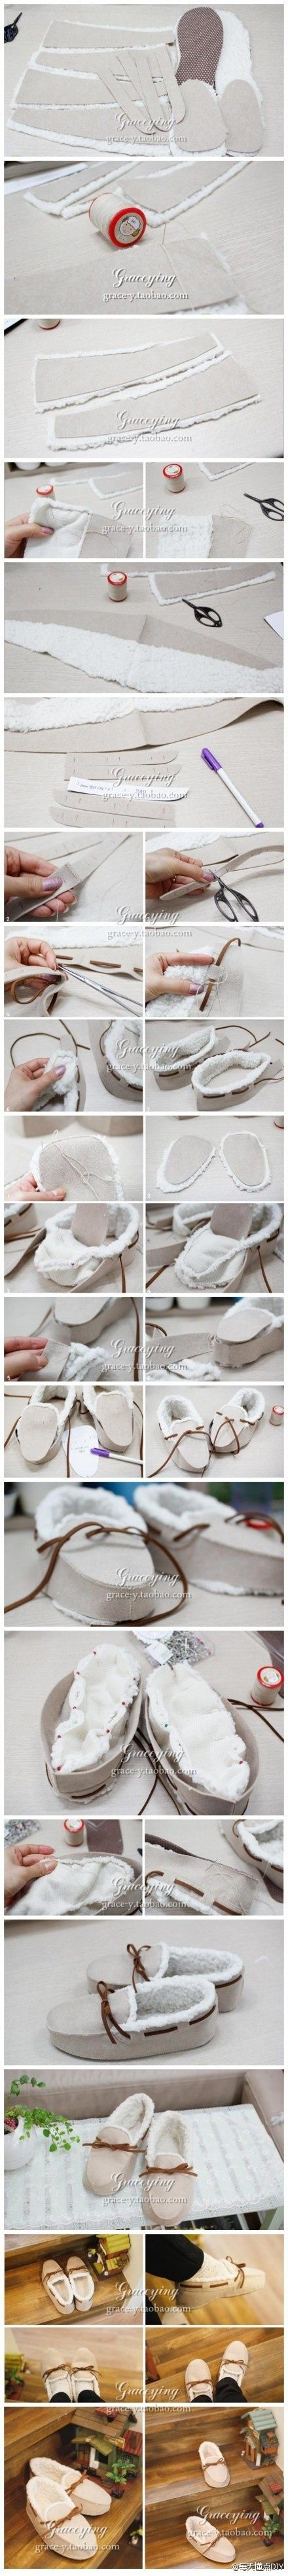 DIY Fuzzy Moccasin Slippers